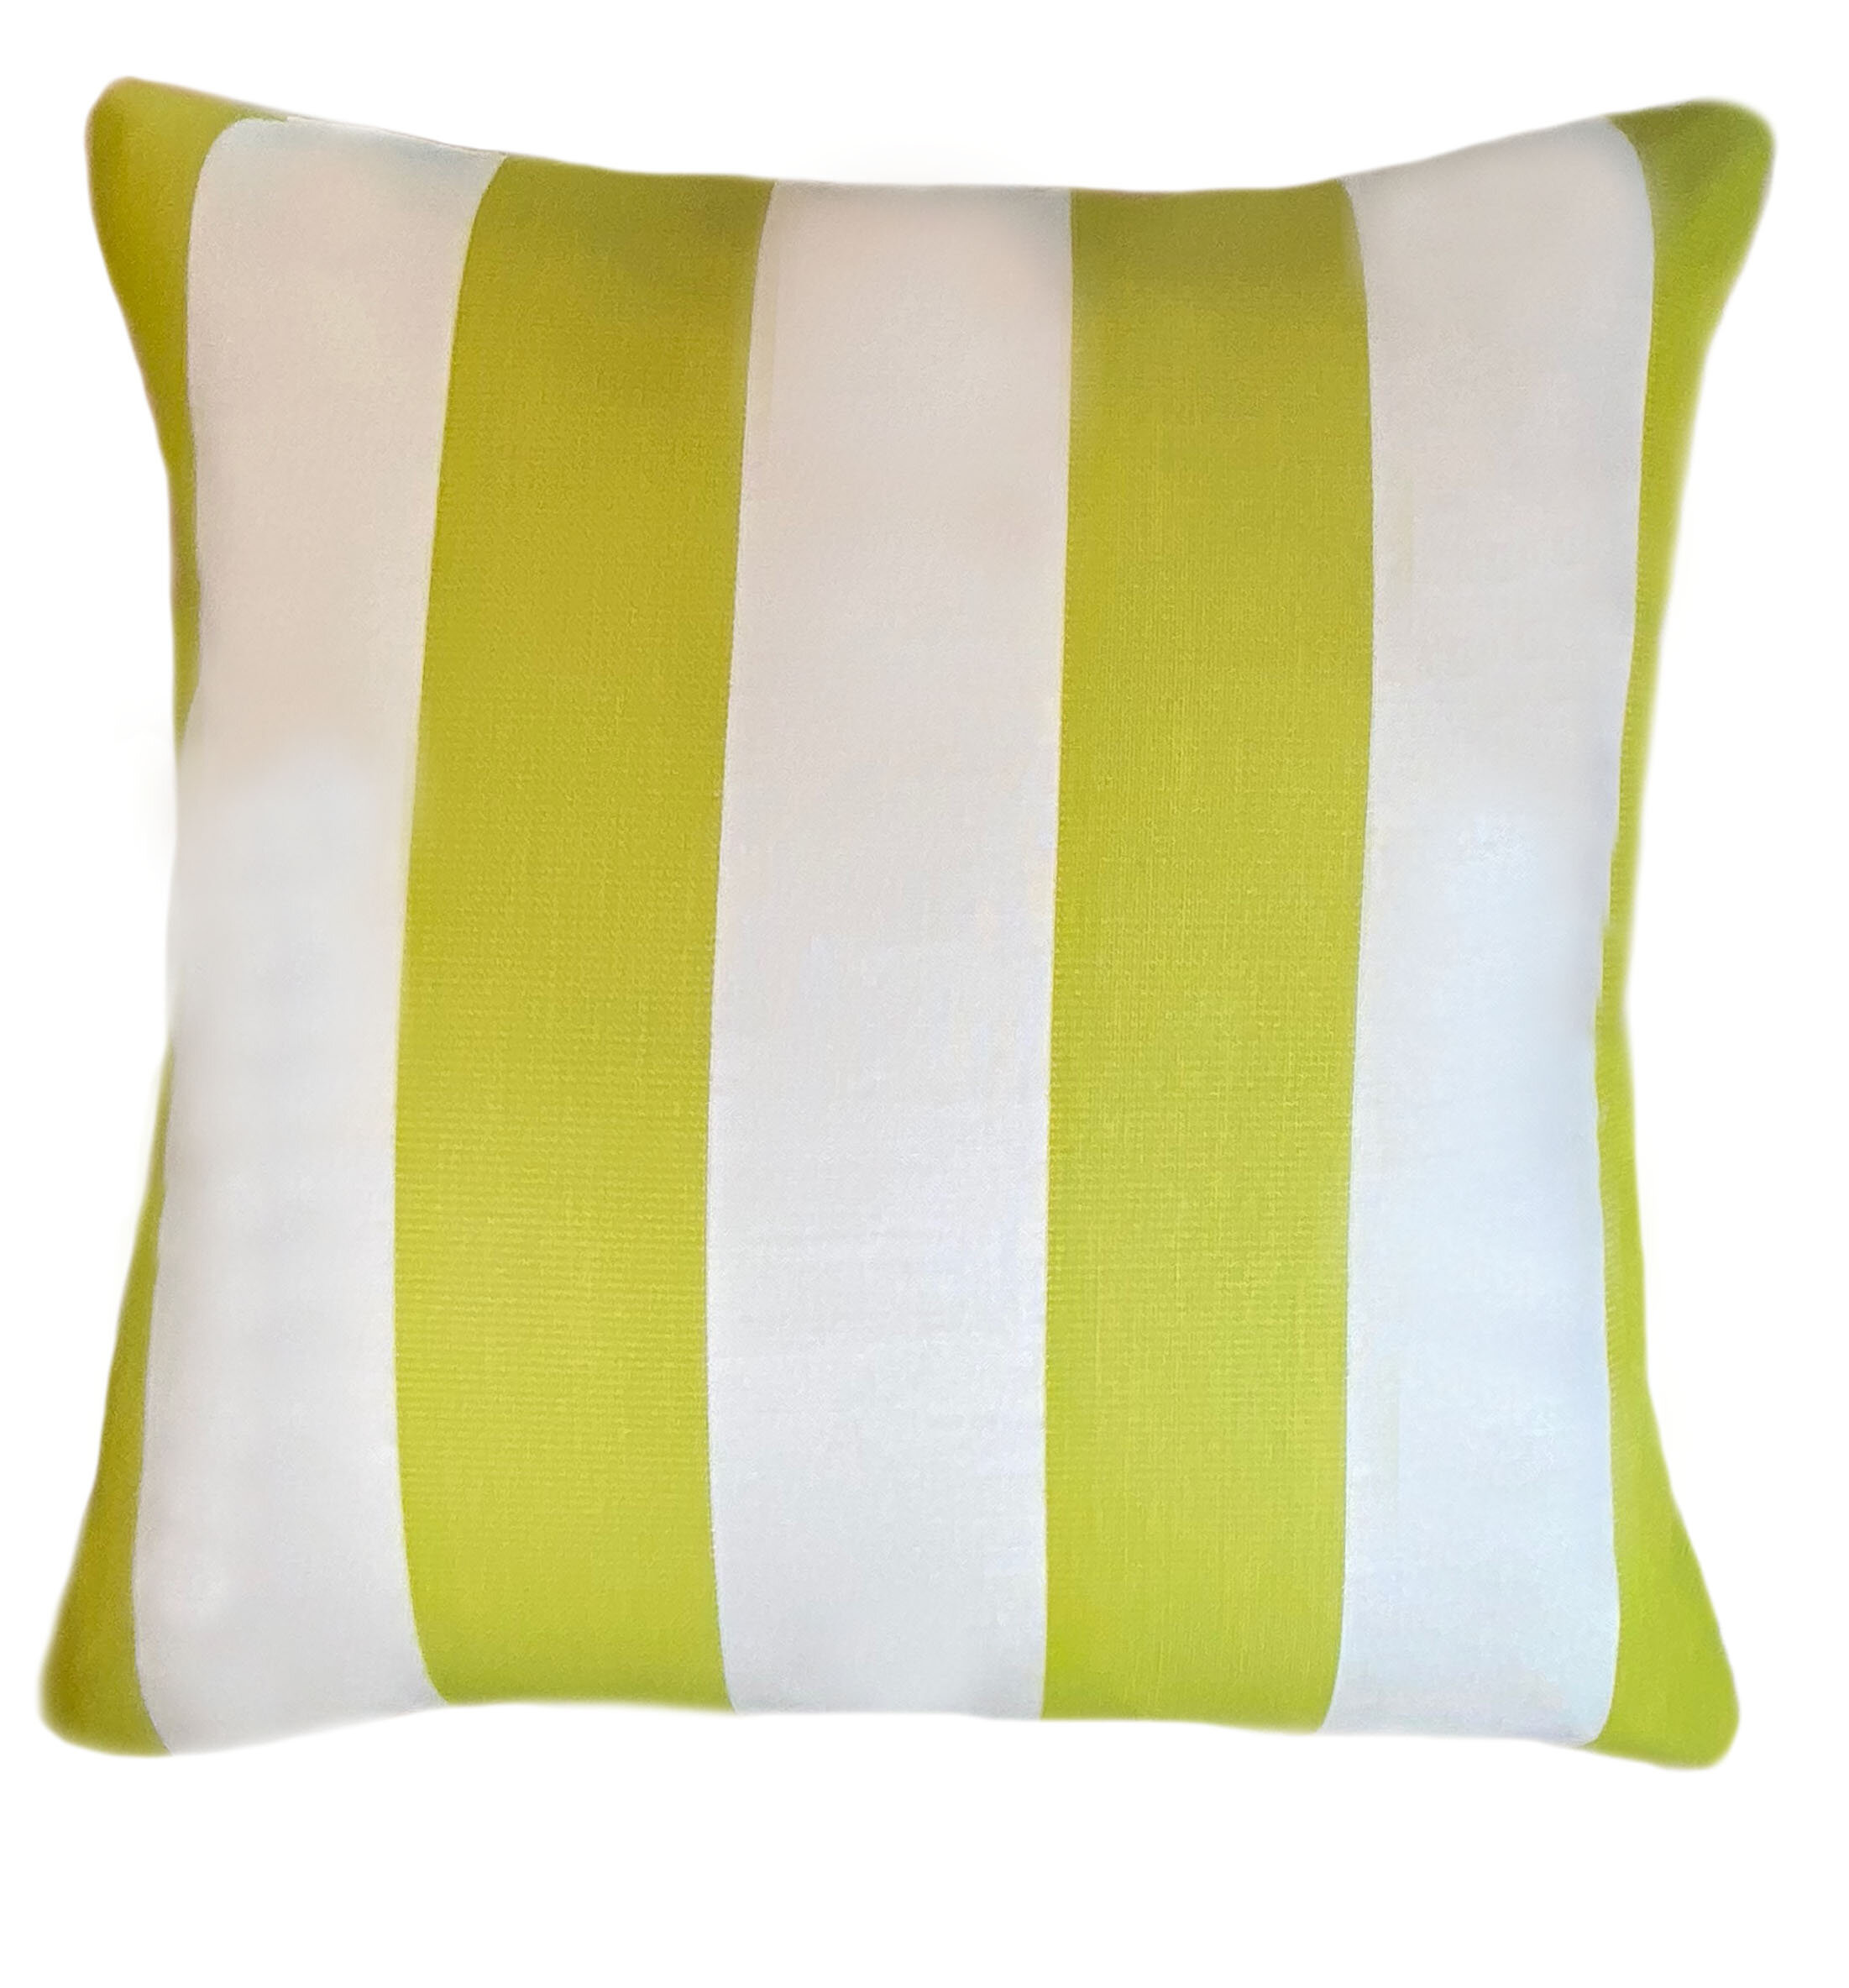 The Fabric Shoppe Beachside Sunbrella Indoor Outdoor Striped Throw Pillow Perigold